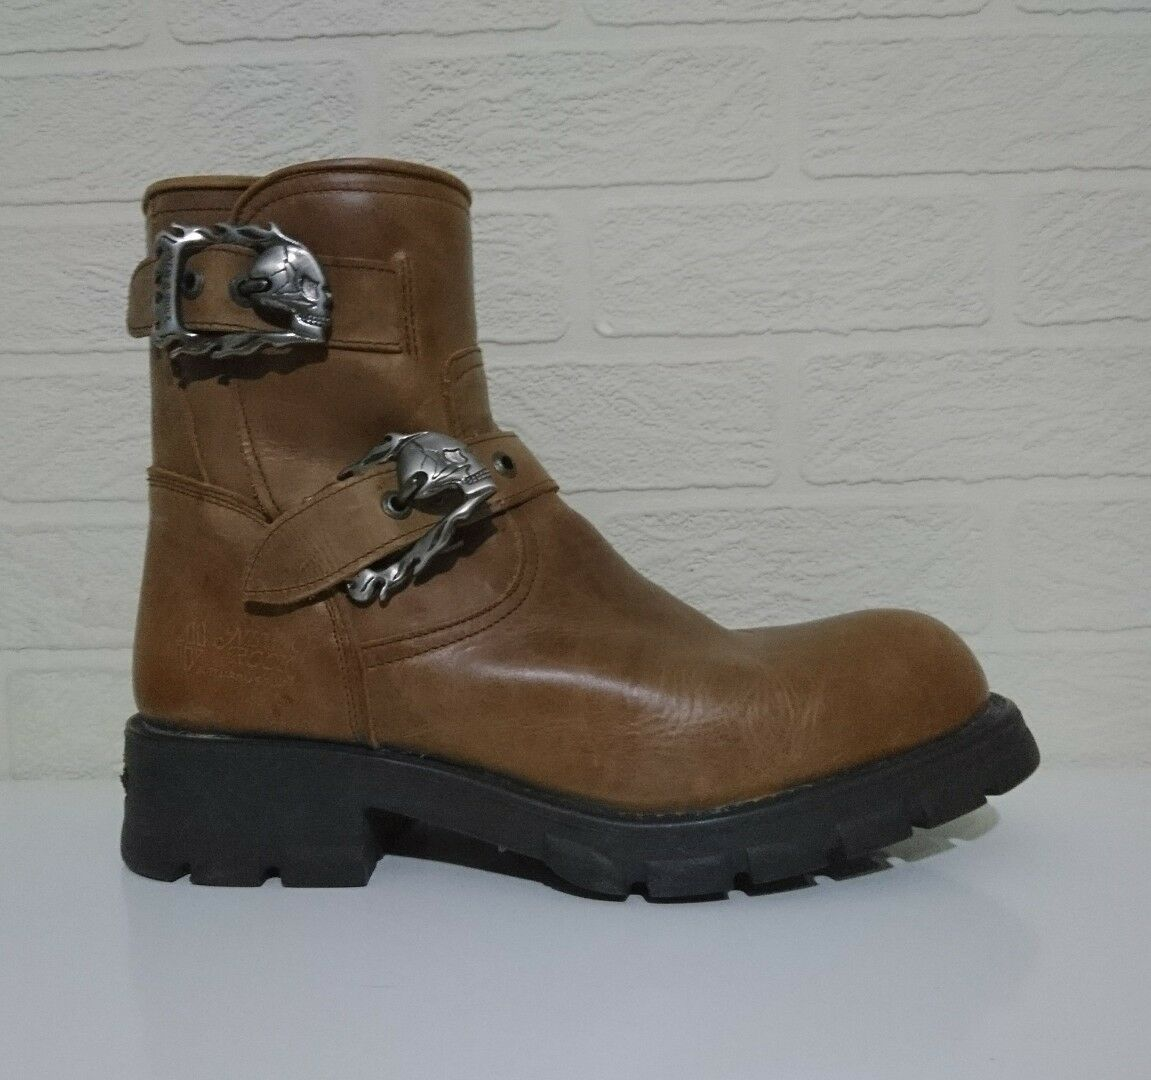 NEW ROCK - Newman Collection (Limited Production) M.7613 braun Motorcycle Stiefel